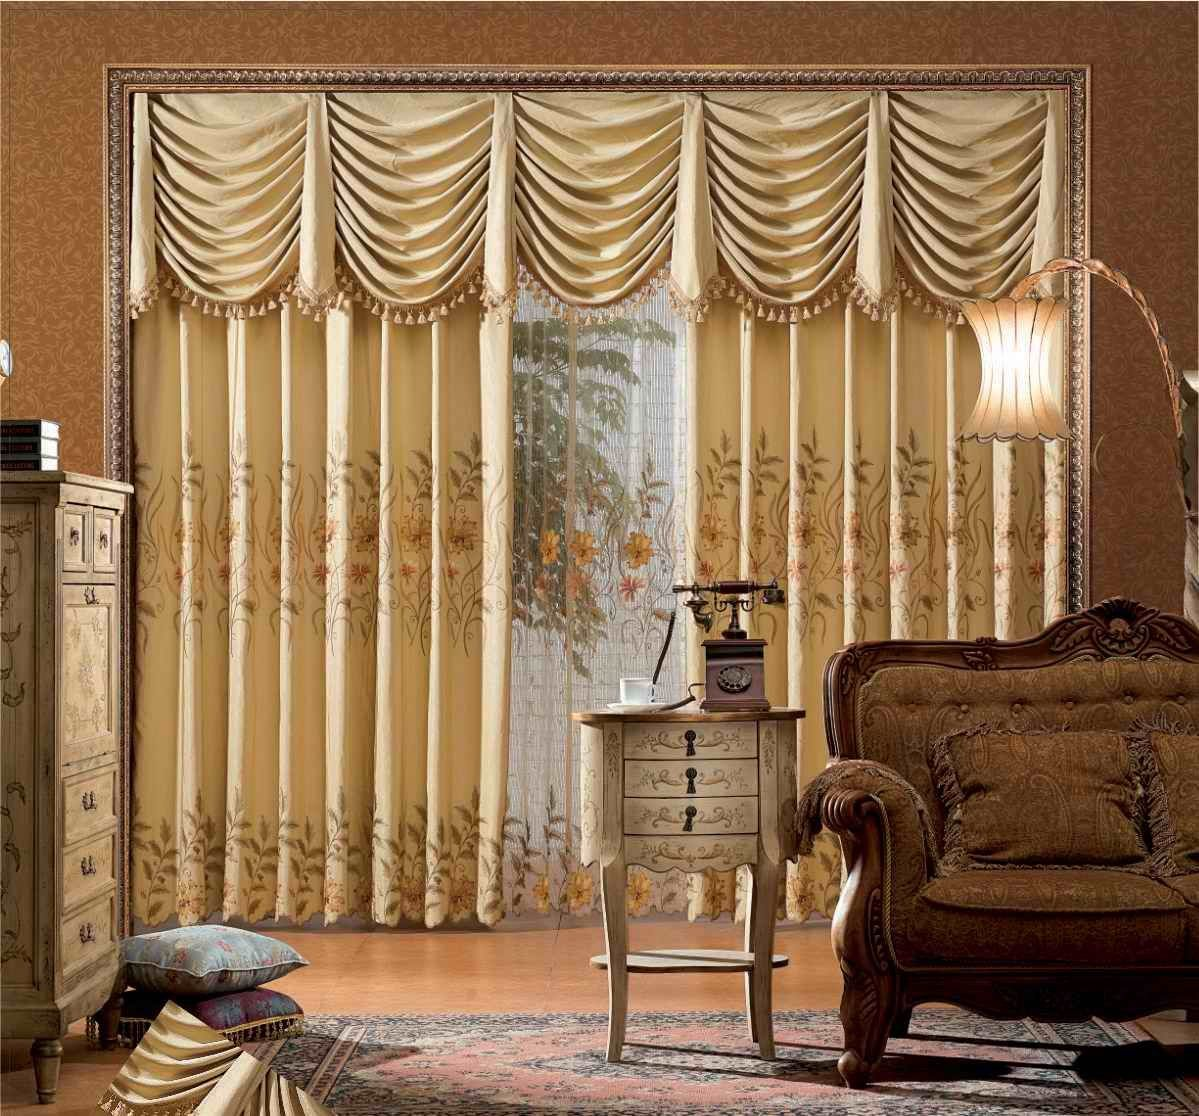 top ideas about curtains for living room on pinterest modern drapery designs for living room - Drapery Design Ideas